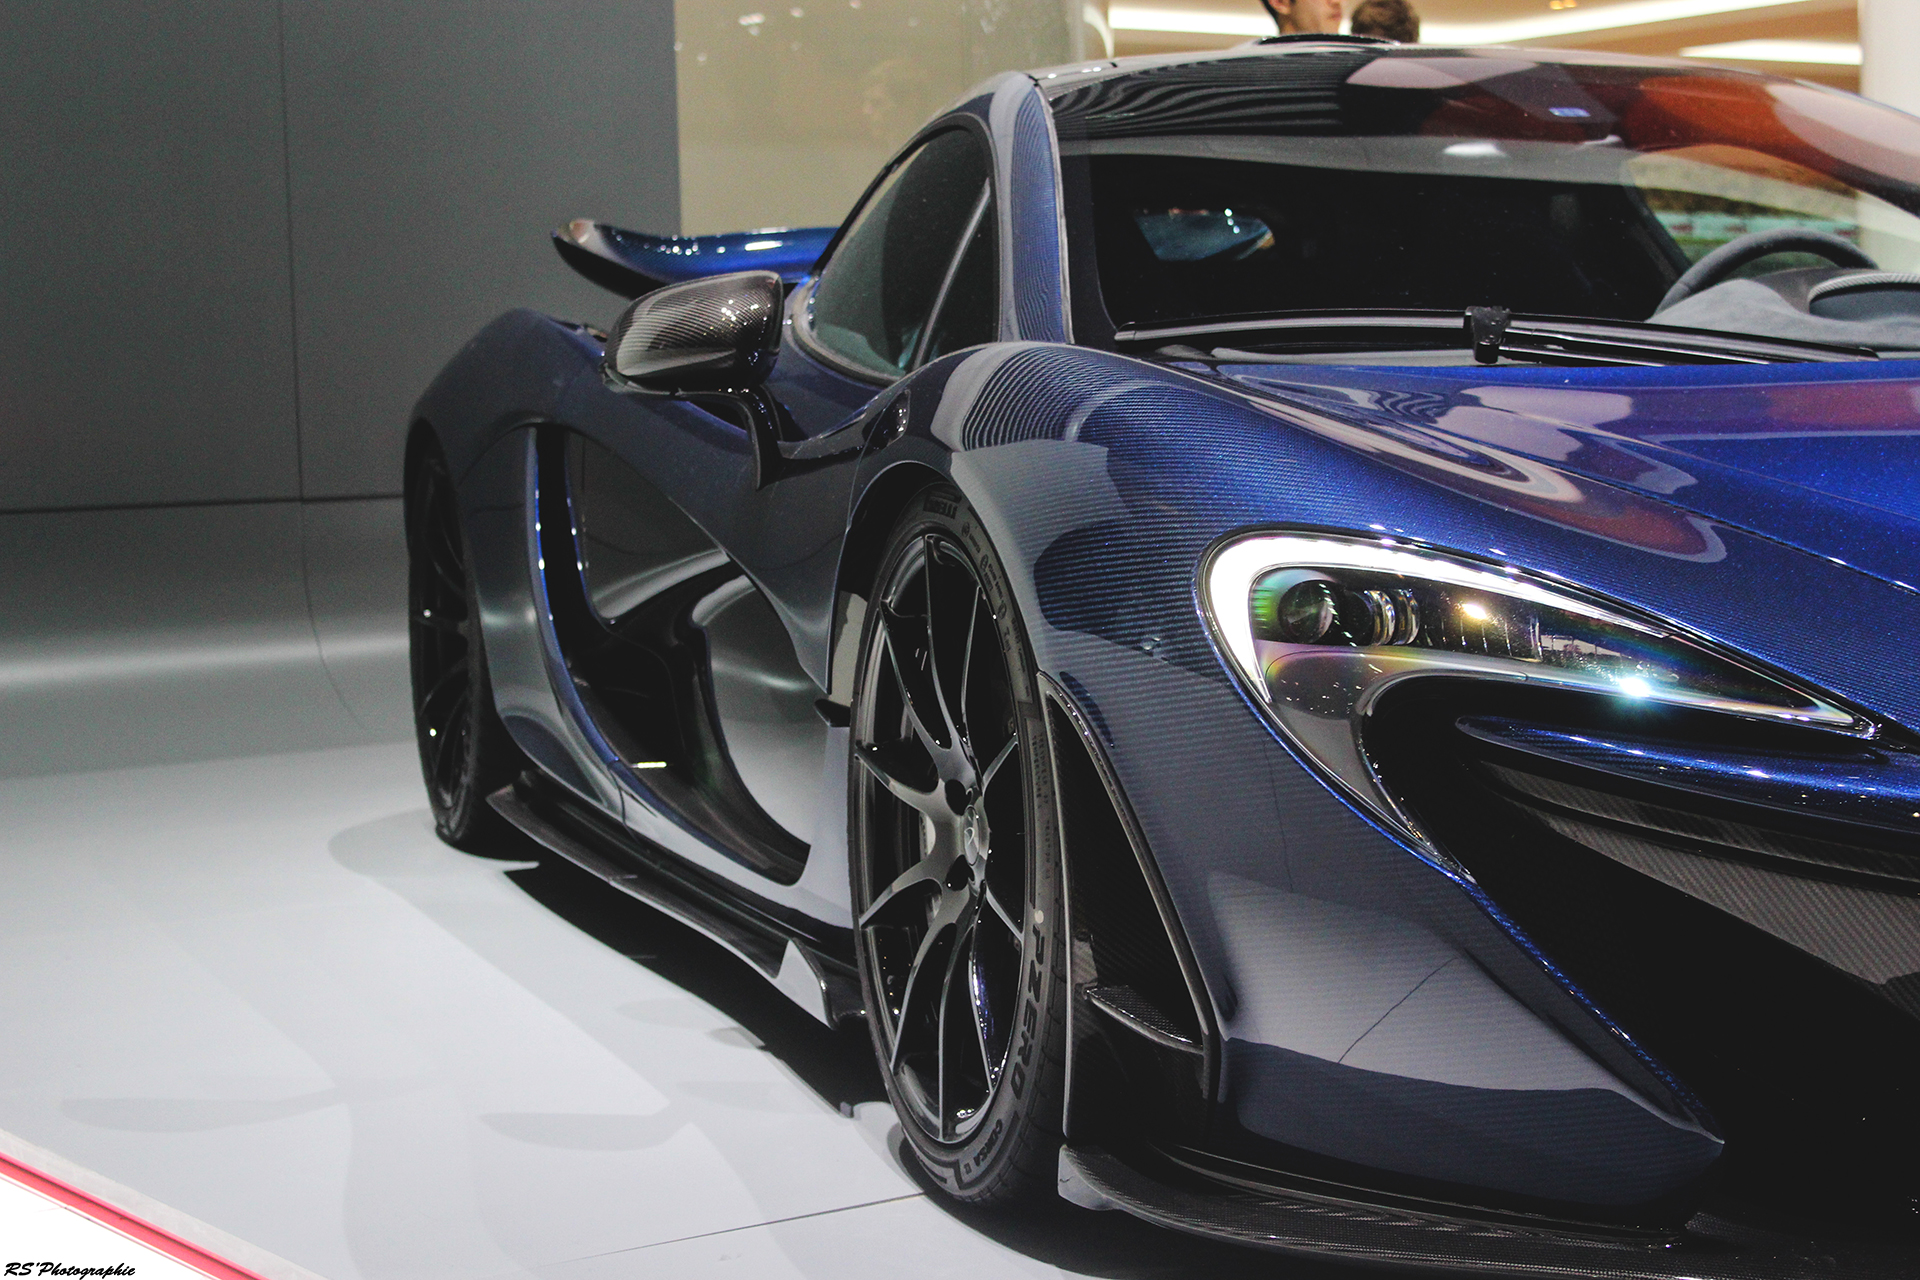 McLaren P1 MSO - side - Geneva 2016 - Arnaud Demasier RS Photographie